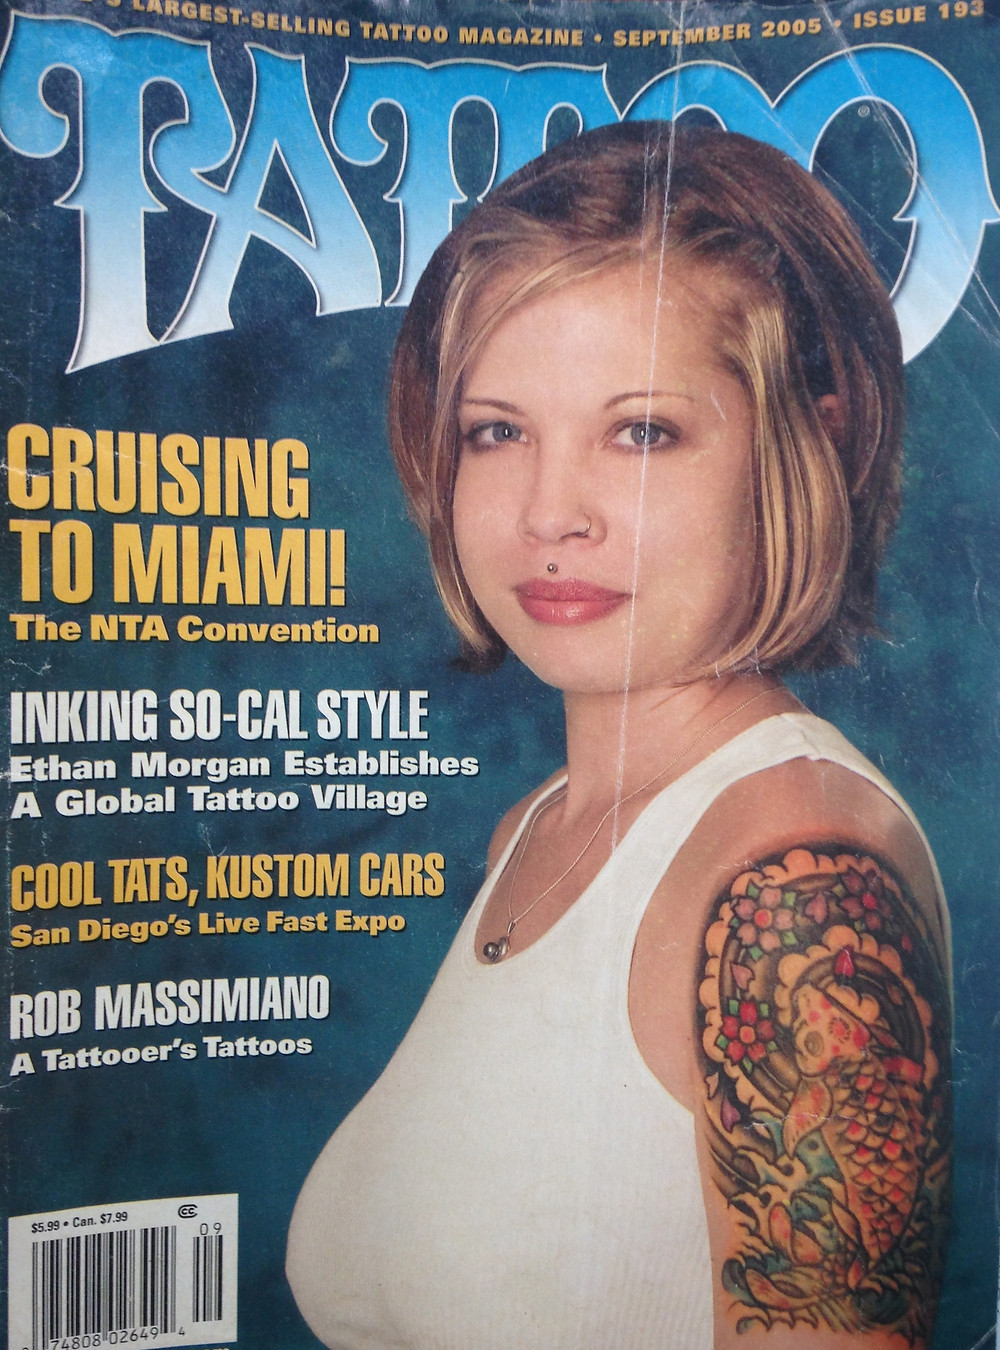 Tattoo Magazine September 2005